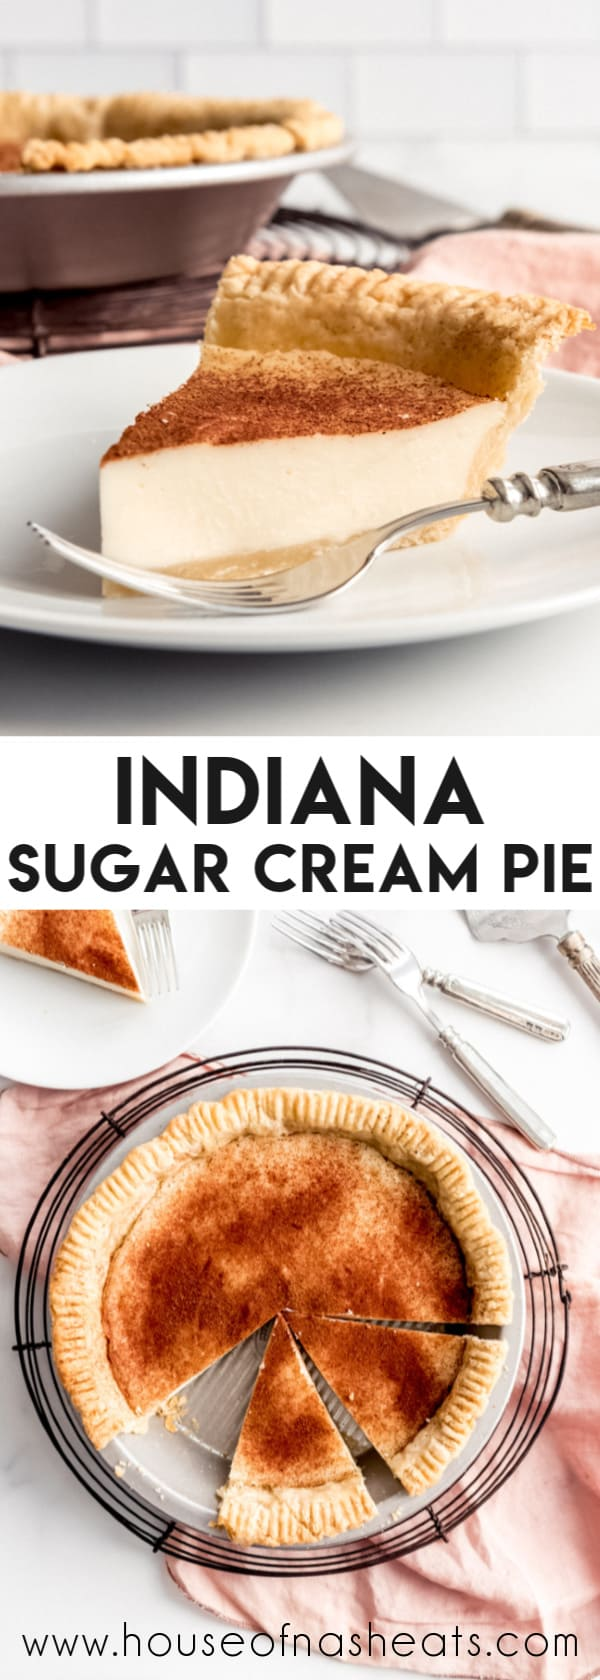 Indiana Sugar Cream Pie #sugarcreampie